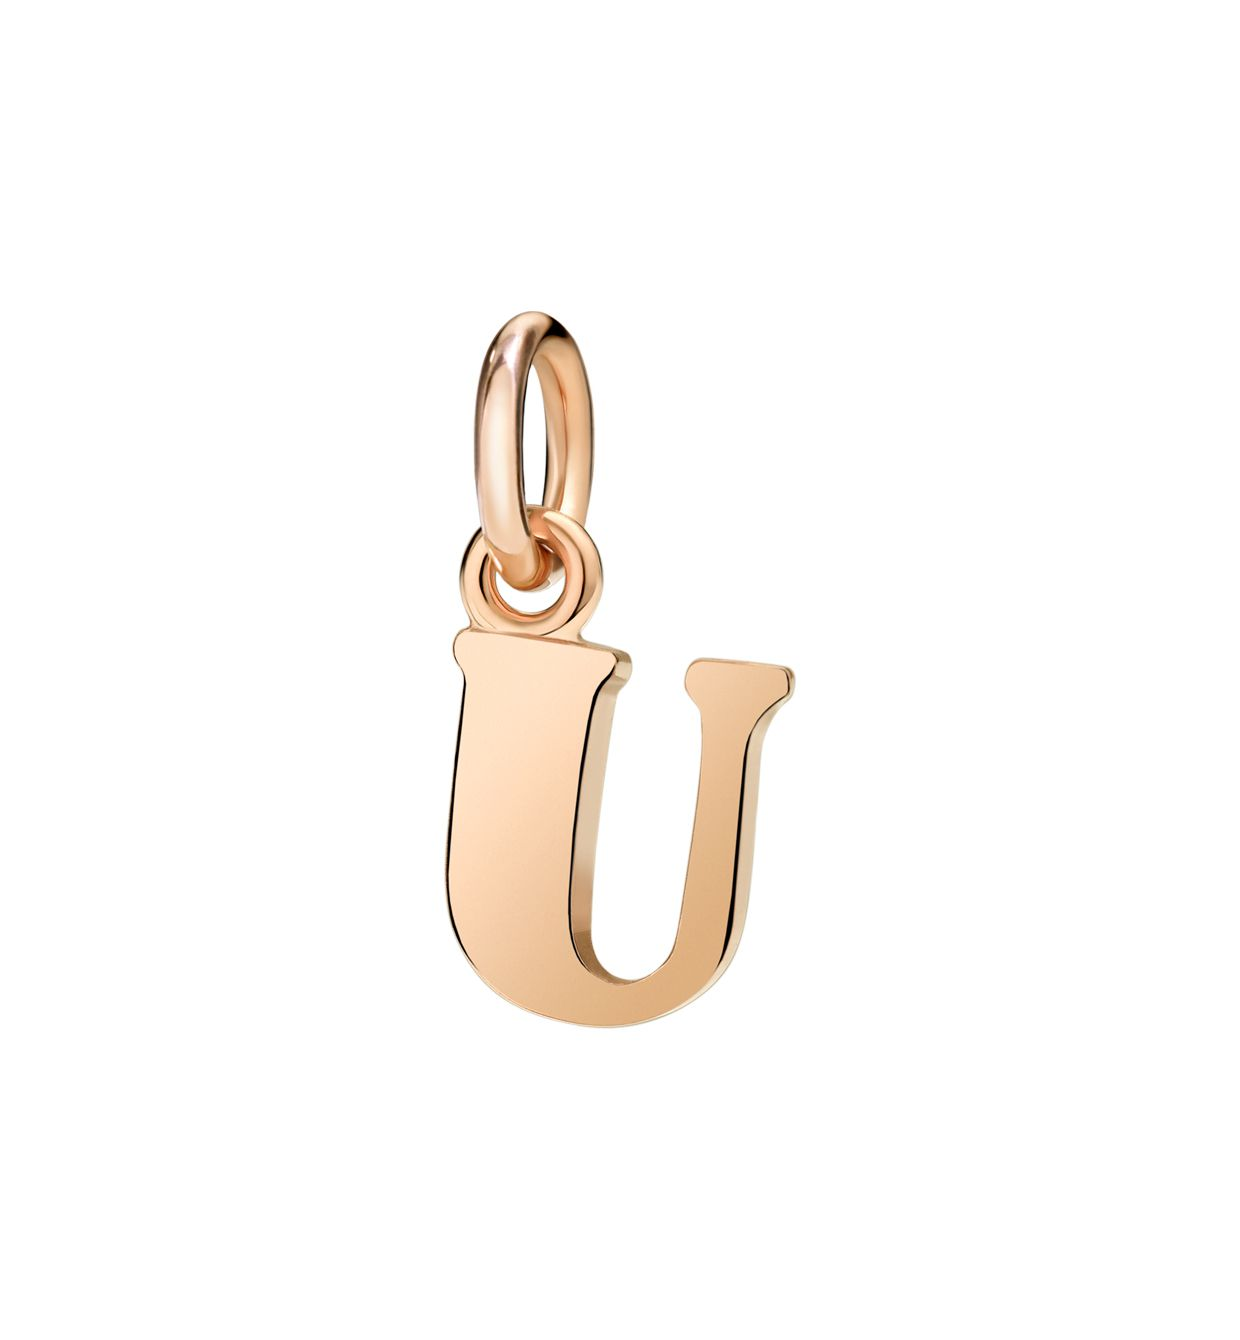 DoDo Letter U in 9k Rose Gold - Orsini Jewellers NZ